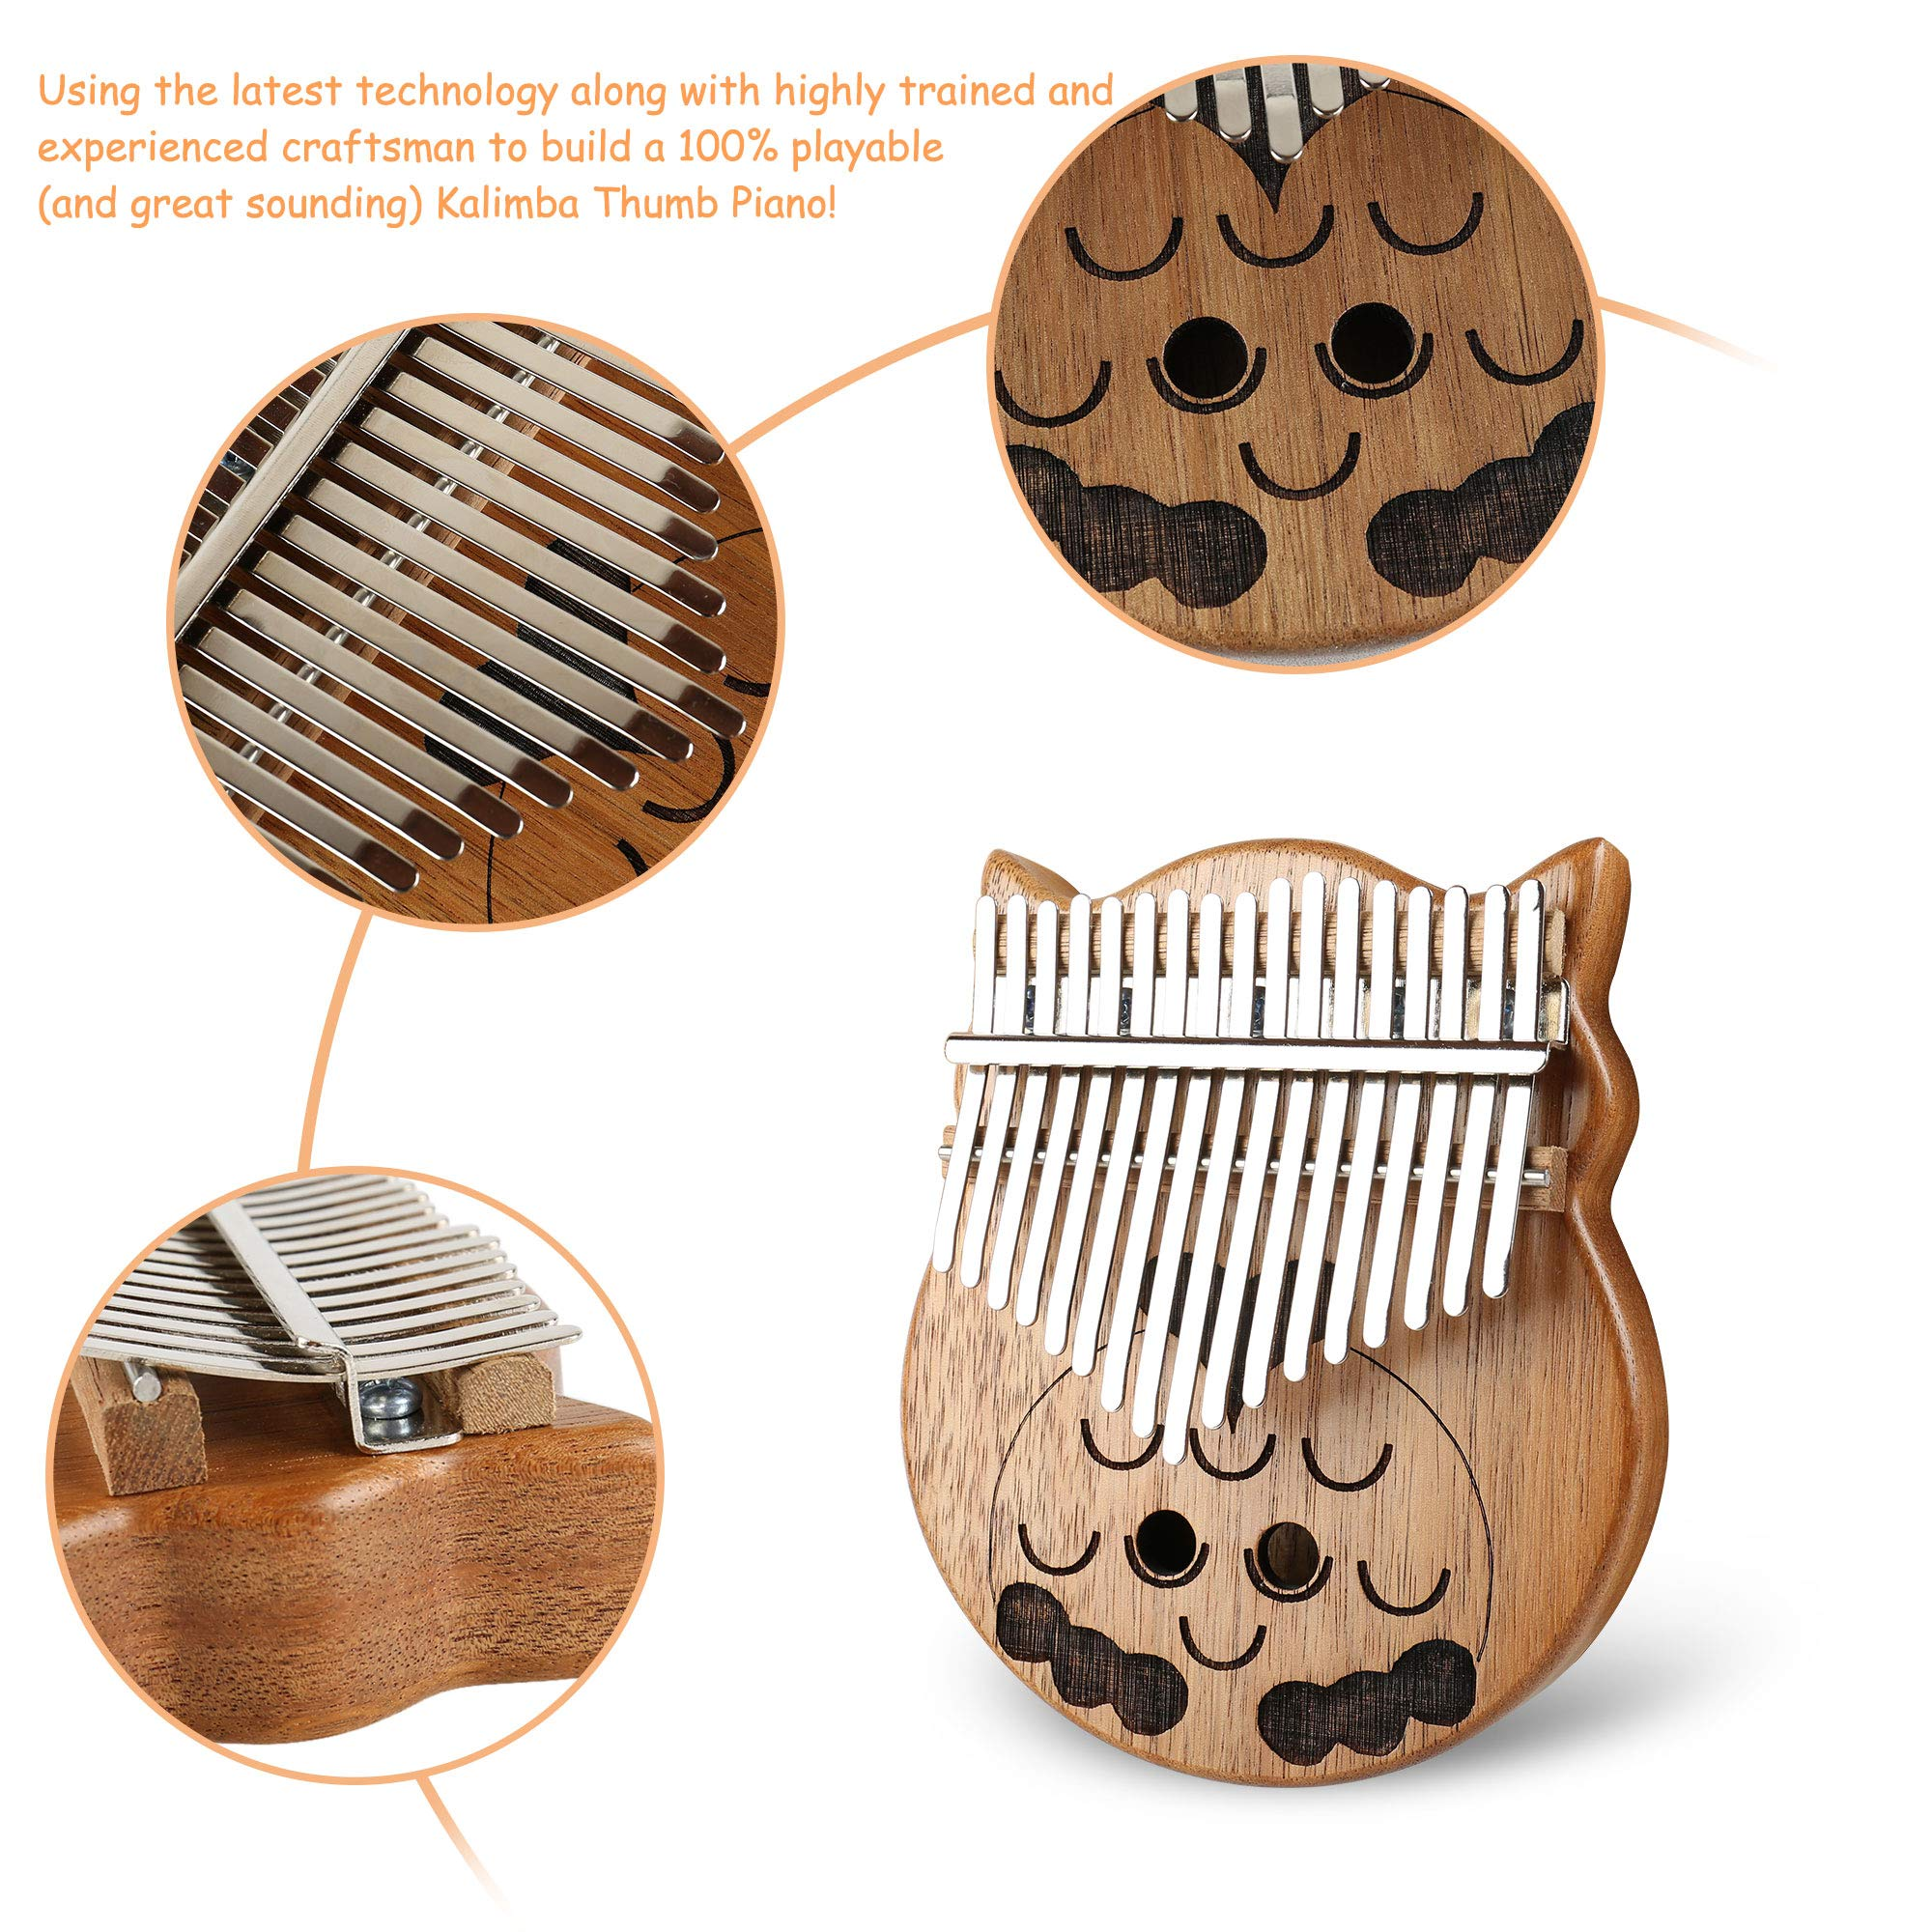 Owl Kalimba Thumb Piano 17 Keys Thumb Instrument with Number Sticker, Tuning Hammer, Protective Box and Cleanning Cloth by Caiyuangg (Image #3)